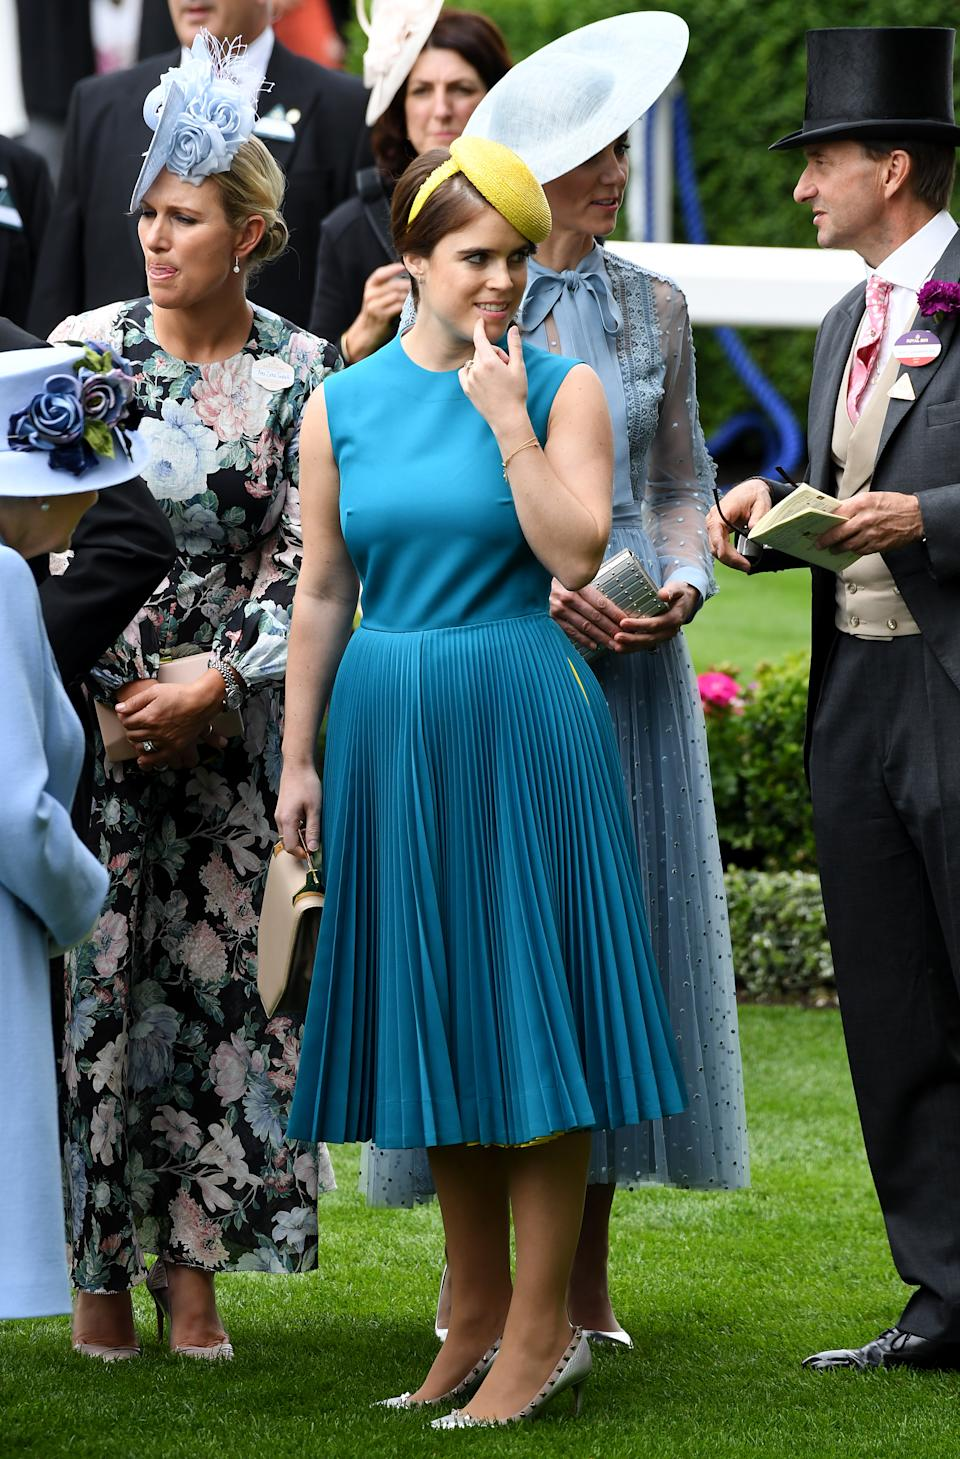 """Princess Eugenie wore a teal sleeveless number with yellow stripe detailing by <a href=""""https://fave.co/2wZvU6z"""" rel=""""nofollow noopener"""" target=""""_blank"""" data-ylk=""""slk:Calvin Klein"""" class=""""link rapid-noclick-resp"""">Calvin Klein</a> with a bold yellow beret-style hat. <em>[Photo: PA]</em>"""